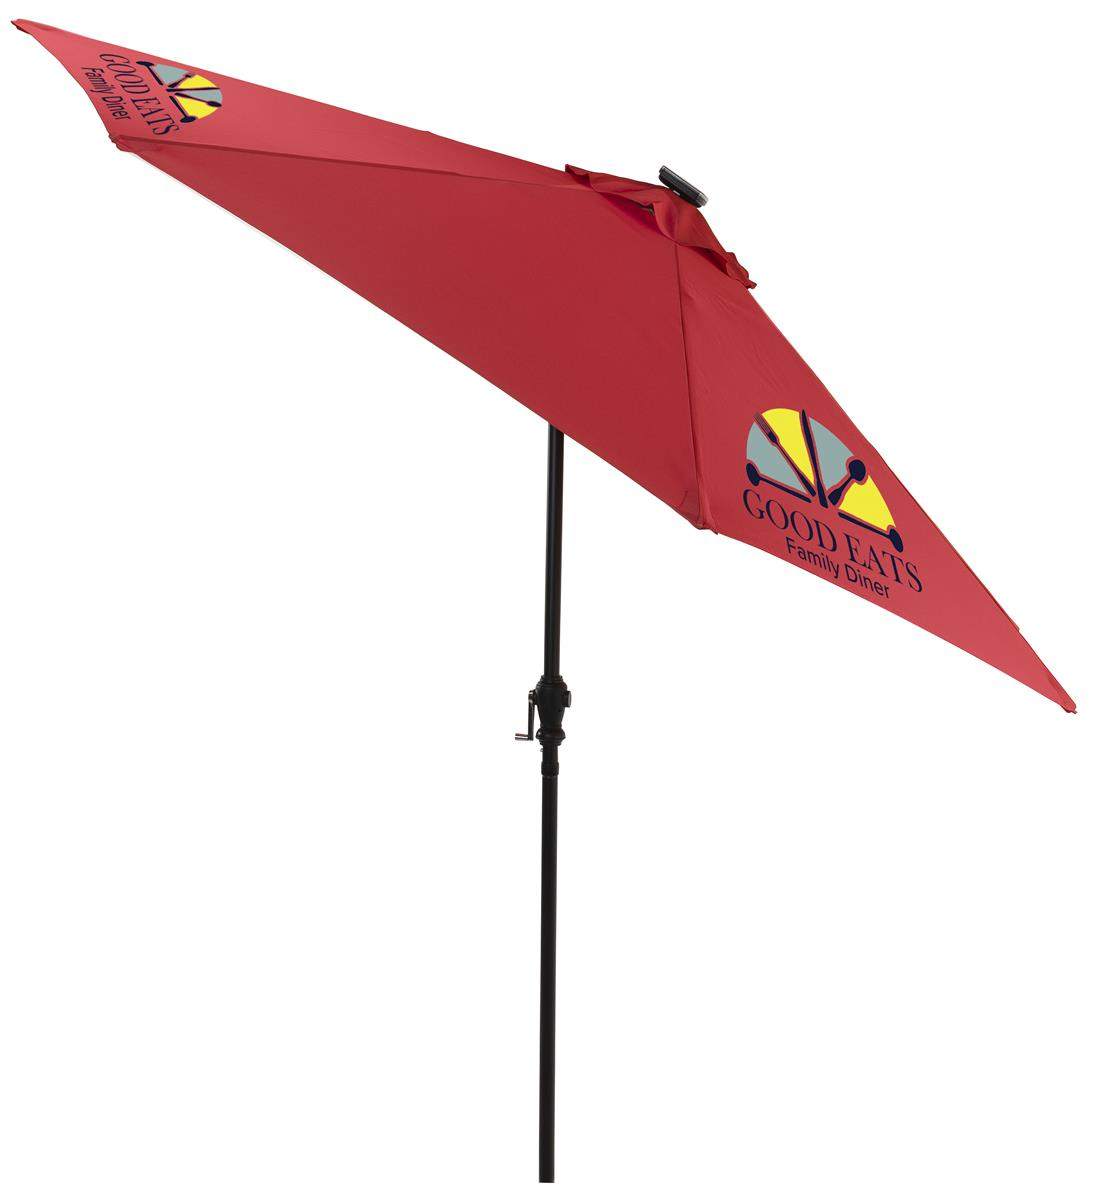 9 patio umbrella 3 color printing and led lights solar powered red